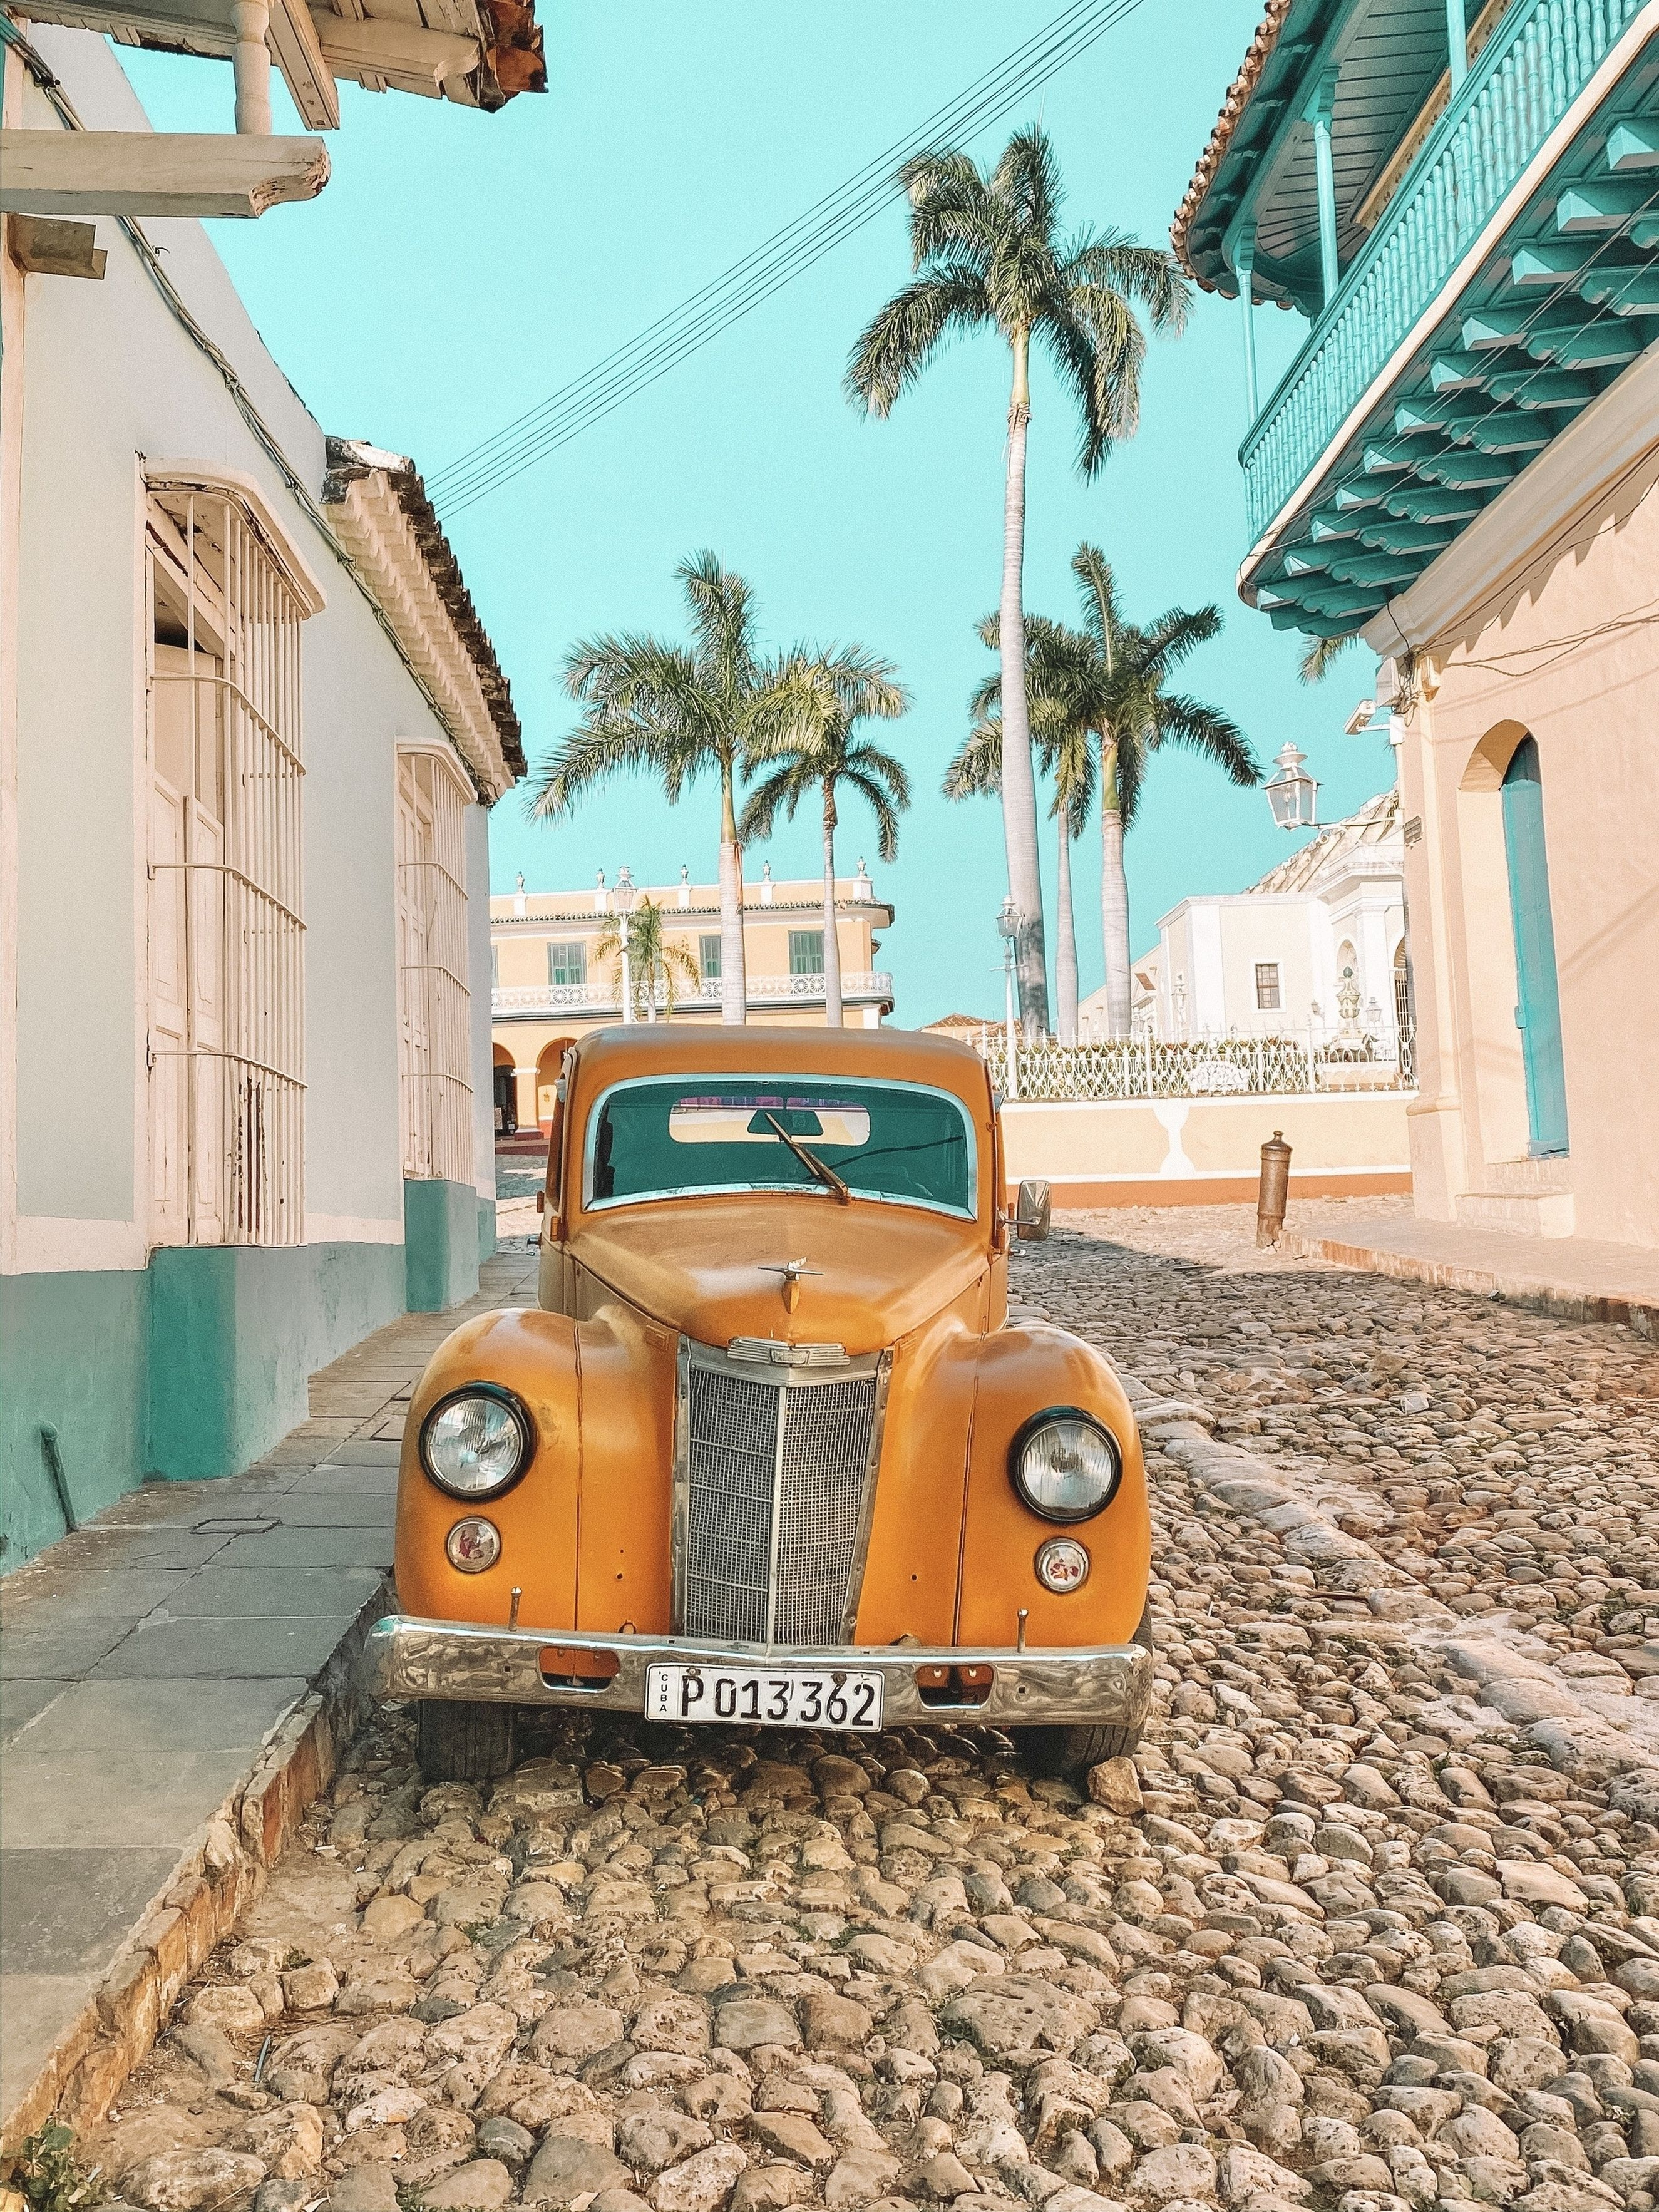 sHow amazing is Cuba?! Look how beautiful Trinidad is! There are so many amazing photo opportunities, it's hard to narrow everything down. It's super easy to get around Cuba - whether you are traveling on your own, with a friend or with a group. For anyone researching, I found the easiest way to get around the country was in shared taxis!   #cuba #trinidad #travelcuba #explorecuba #caribbean #solofemaletravel #cubatravel #cubacars #cubancars #havana #backpacking #caribbeantravel